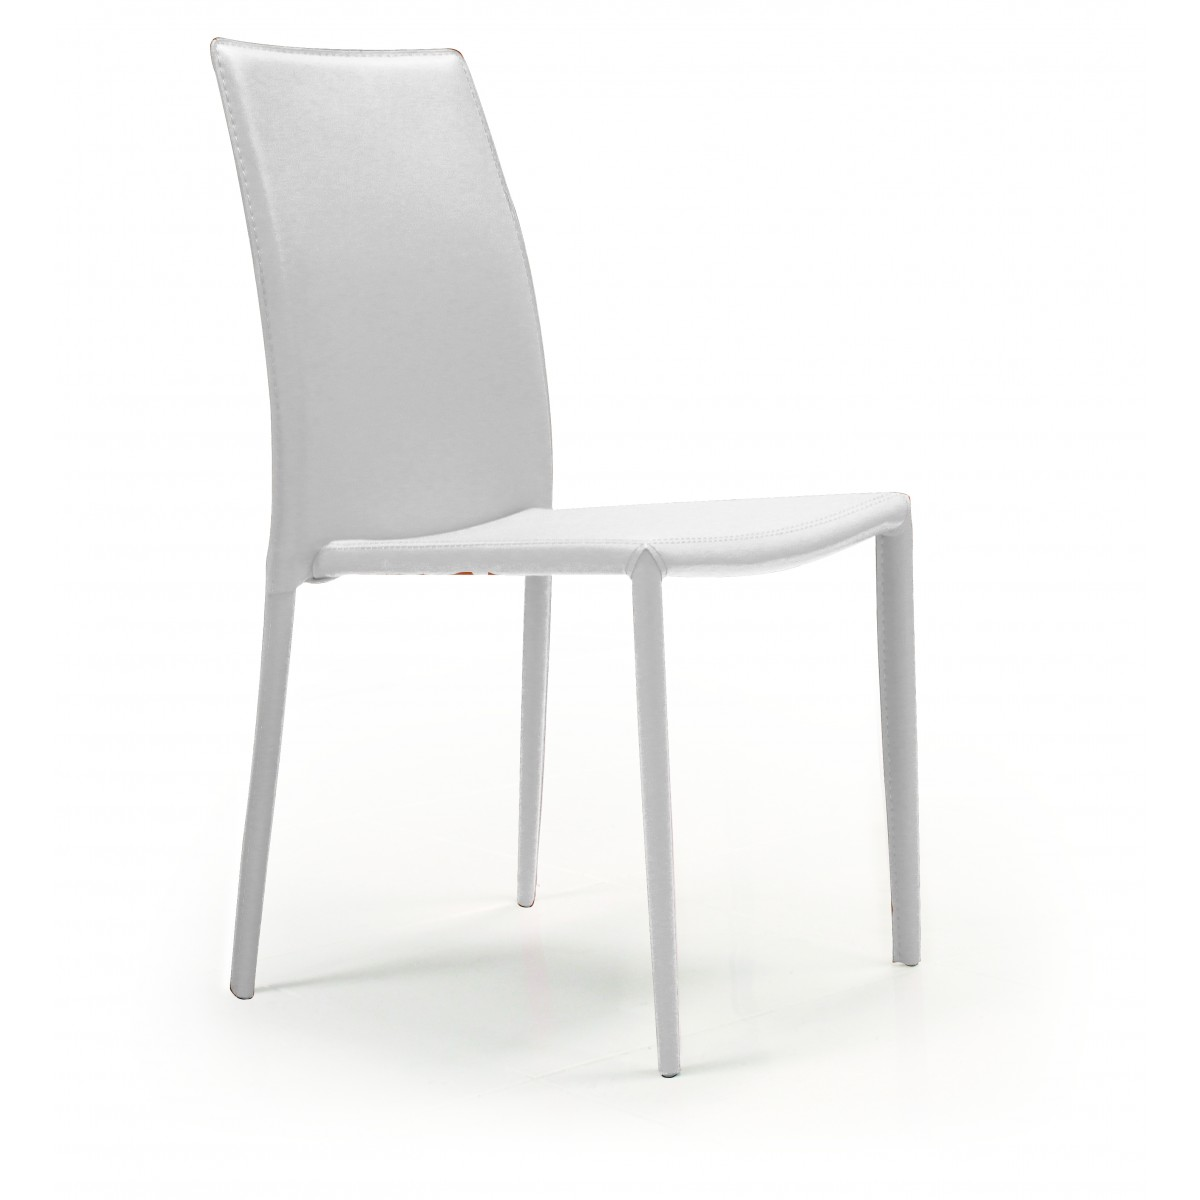 Orlando Dining Chairs By Creative. Color *. Black; White